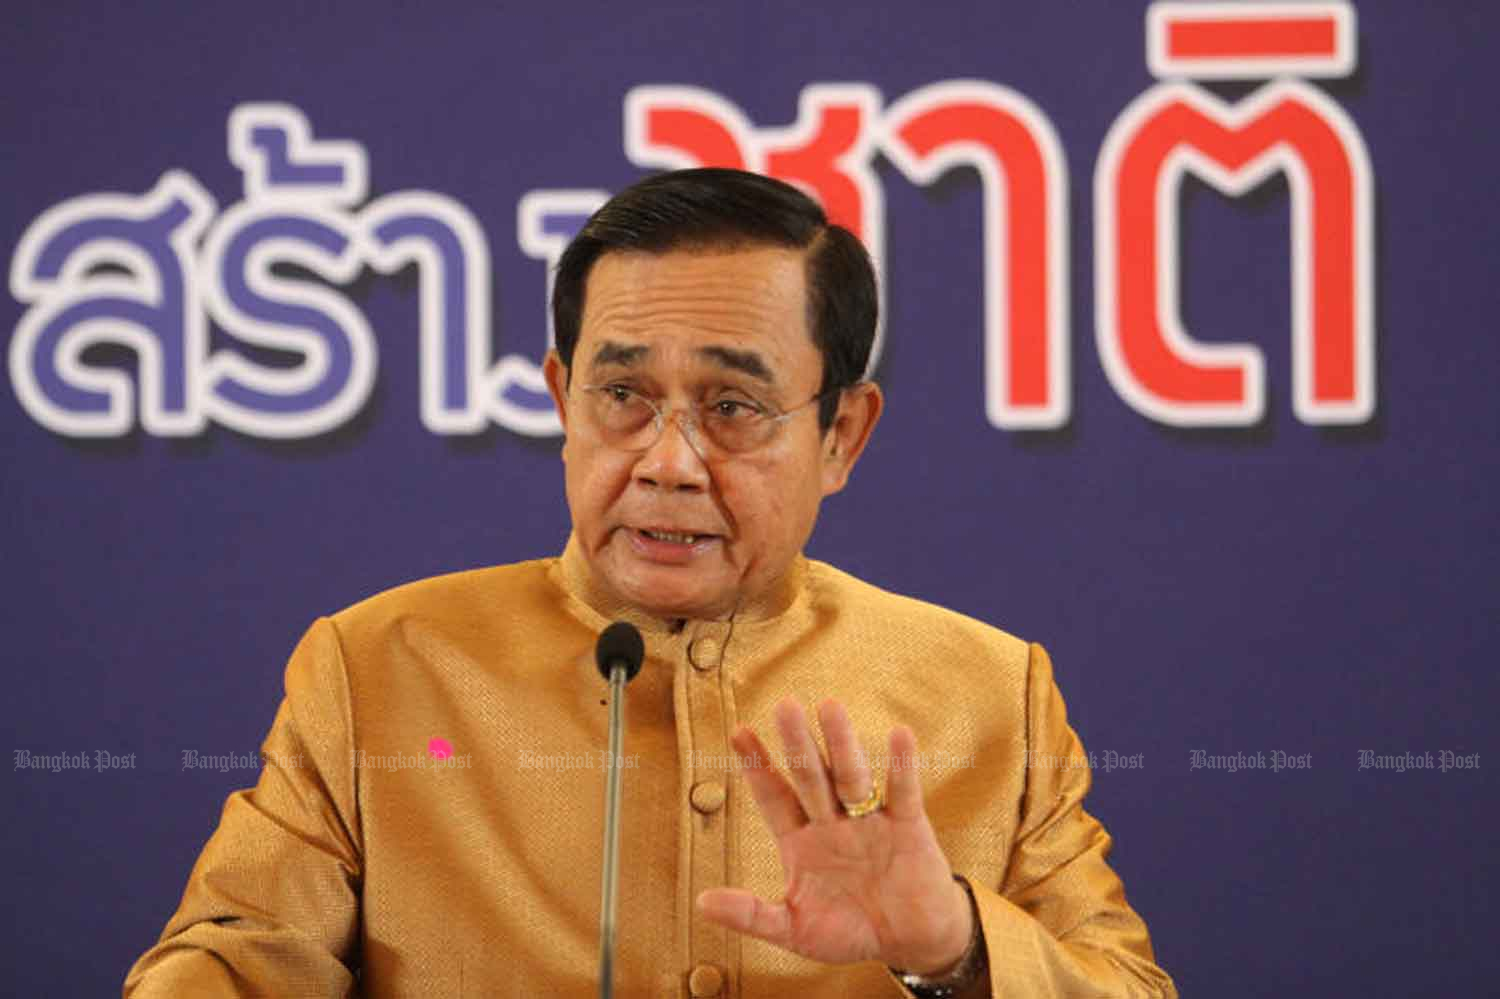 Prime Minister Prayut Chan-o-cha speaks to reporters at Government House after chairing a cabinet meeting on Tuesday. WICHAN CHAROENKIATPAKUL